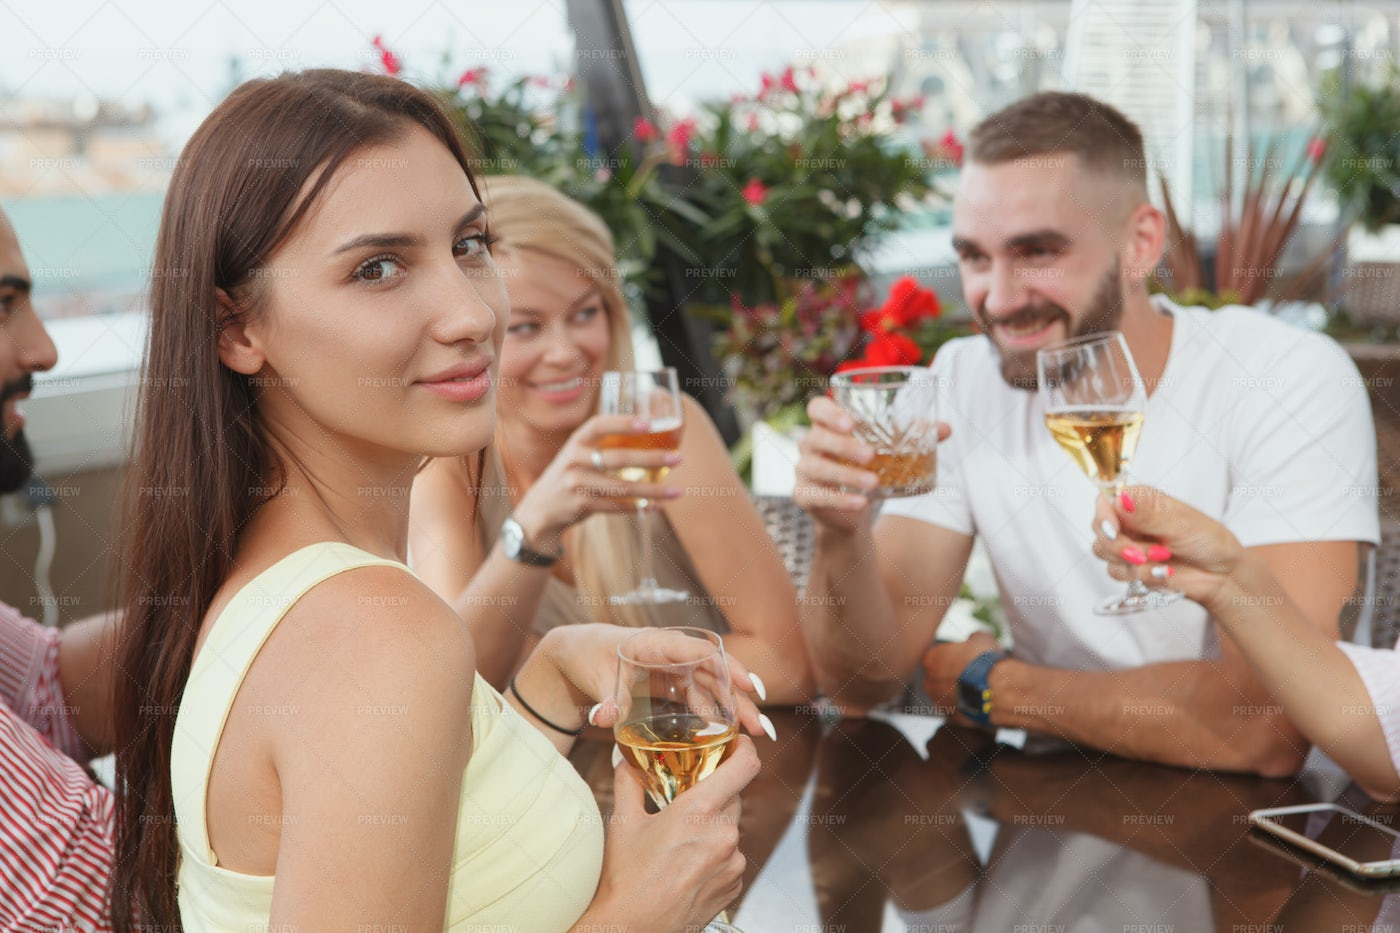 Woman Drinking With Friends: Stock Photos